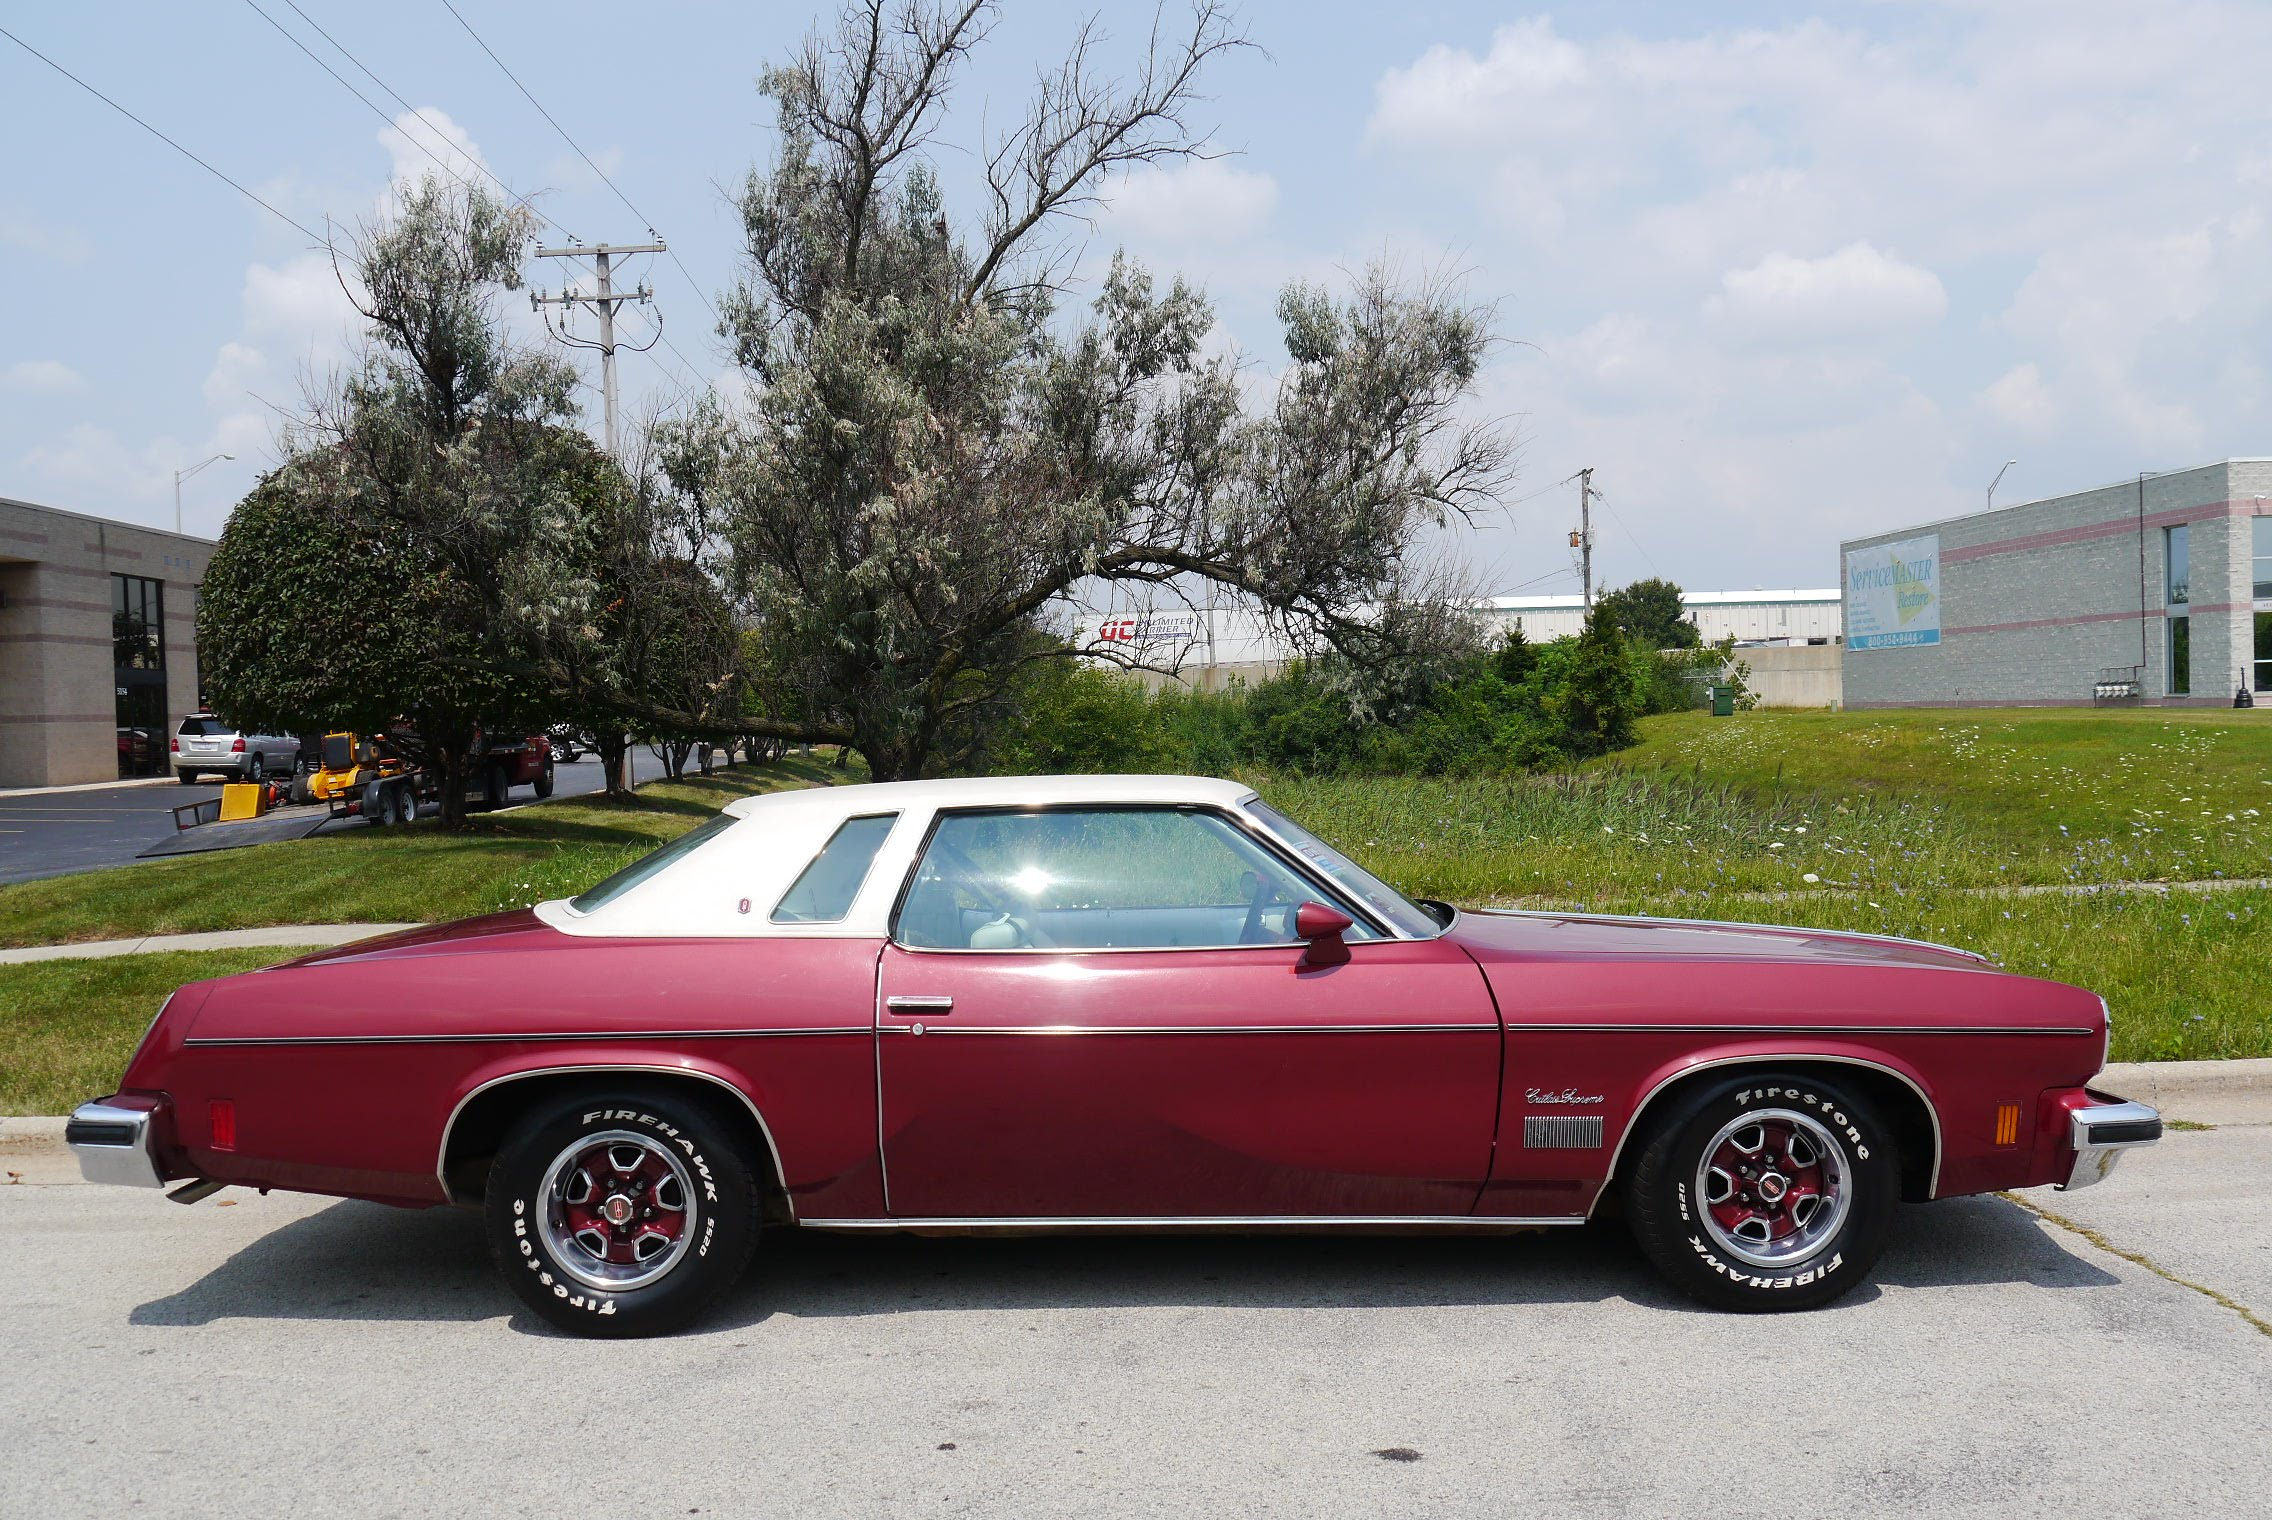 Oldsmobile Cutlass Supreme #29